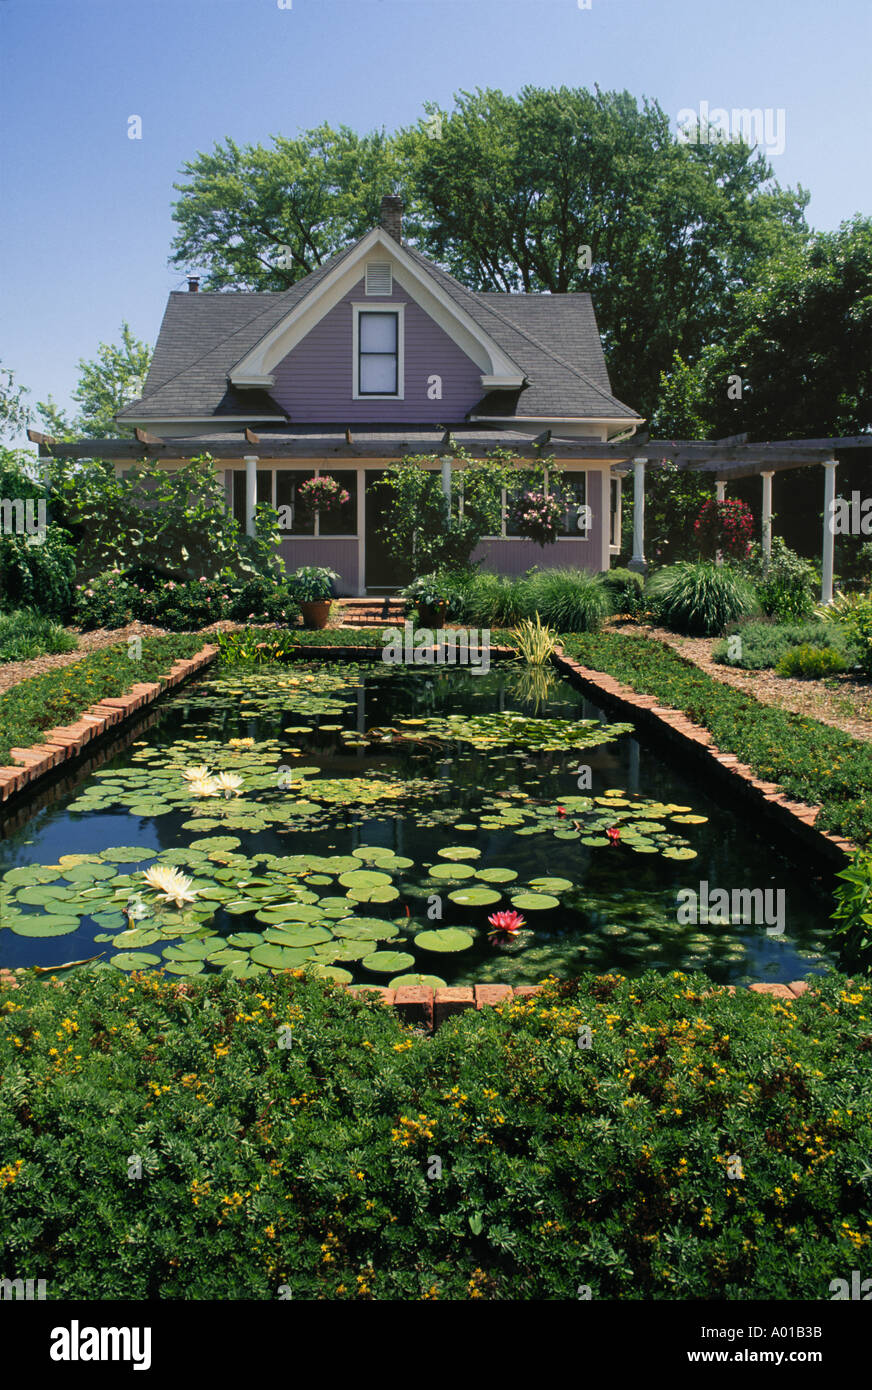 pastel painted wood cottage with large decorative fish pond in